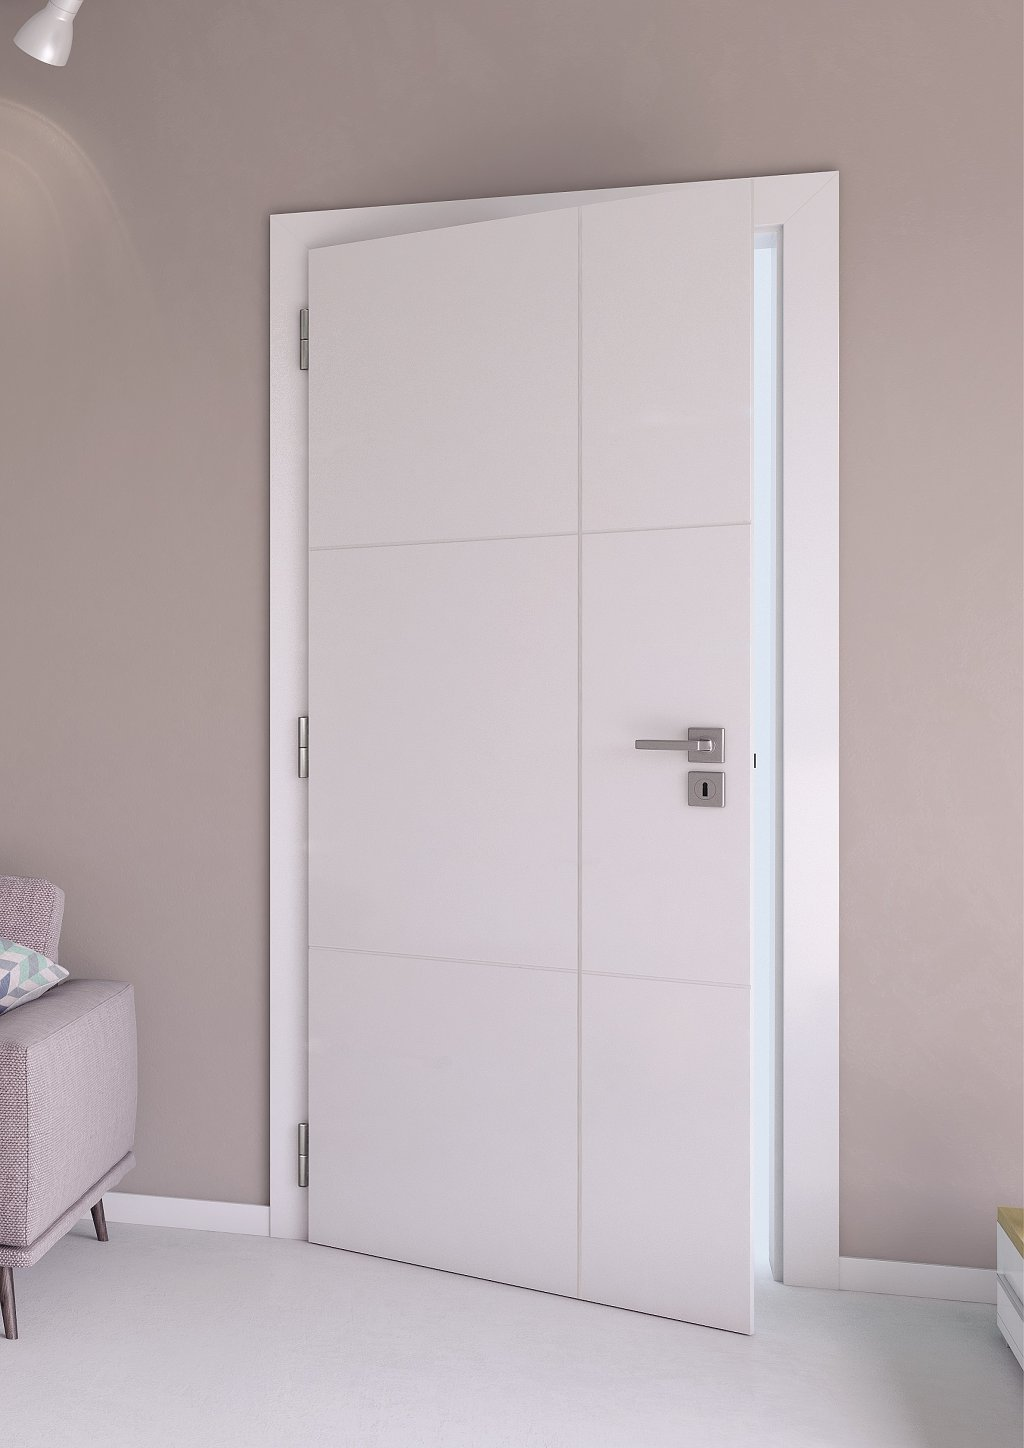 SOLODOOR Polar